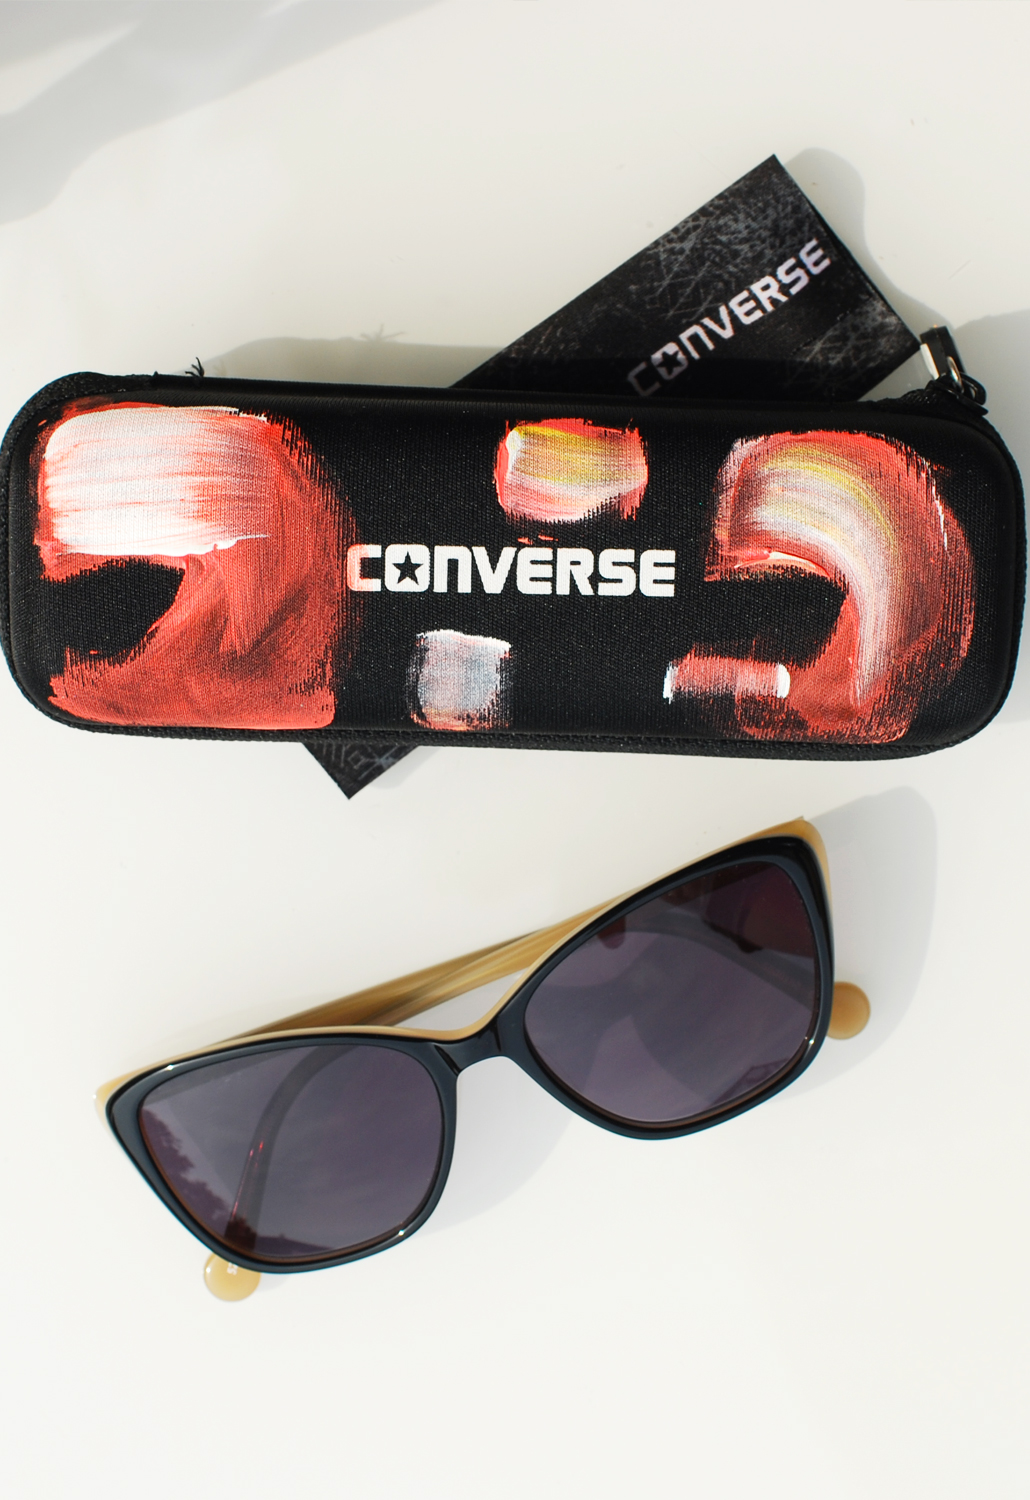 Converse specsavers bril zonnebril by limited edition roxanne dekker illustrations lifestyle by linda